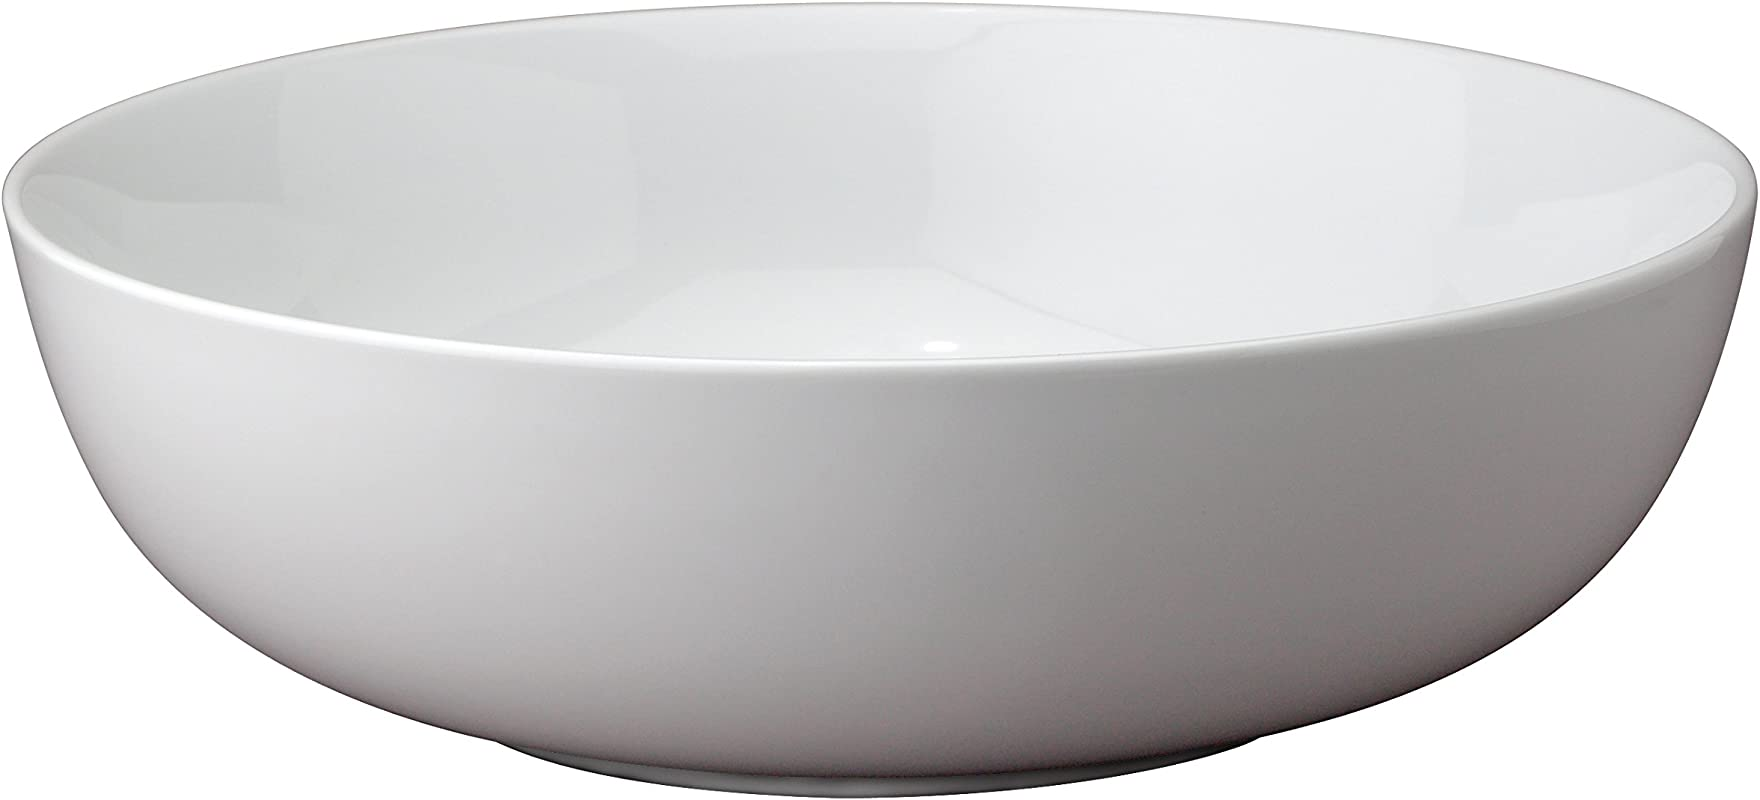 HIC Harold Import Co NT341 HIC Porcelain Pasta Bowl 13 X 13 X 6 Inches